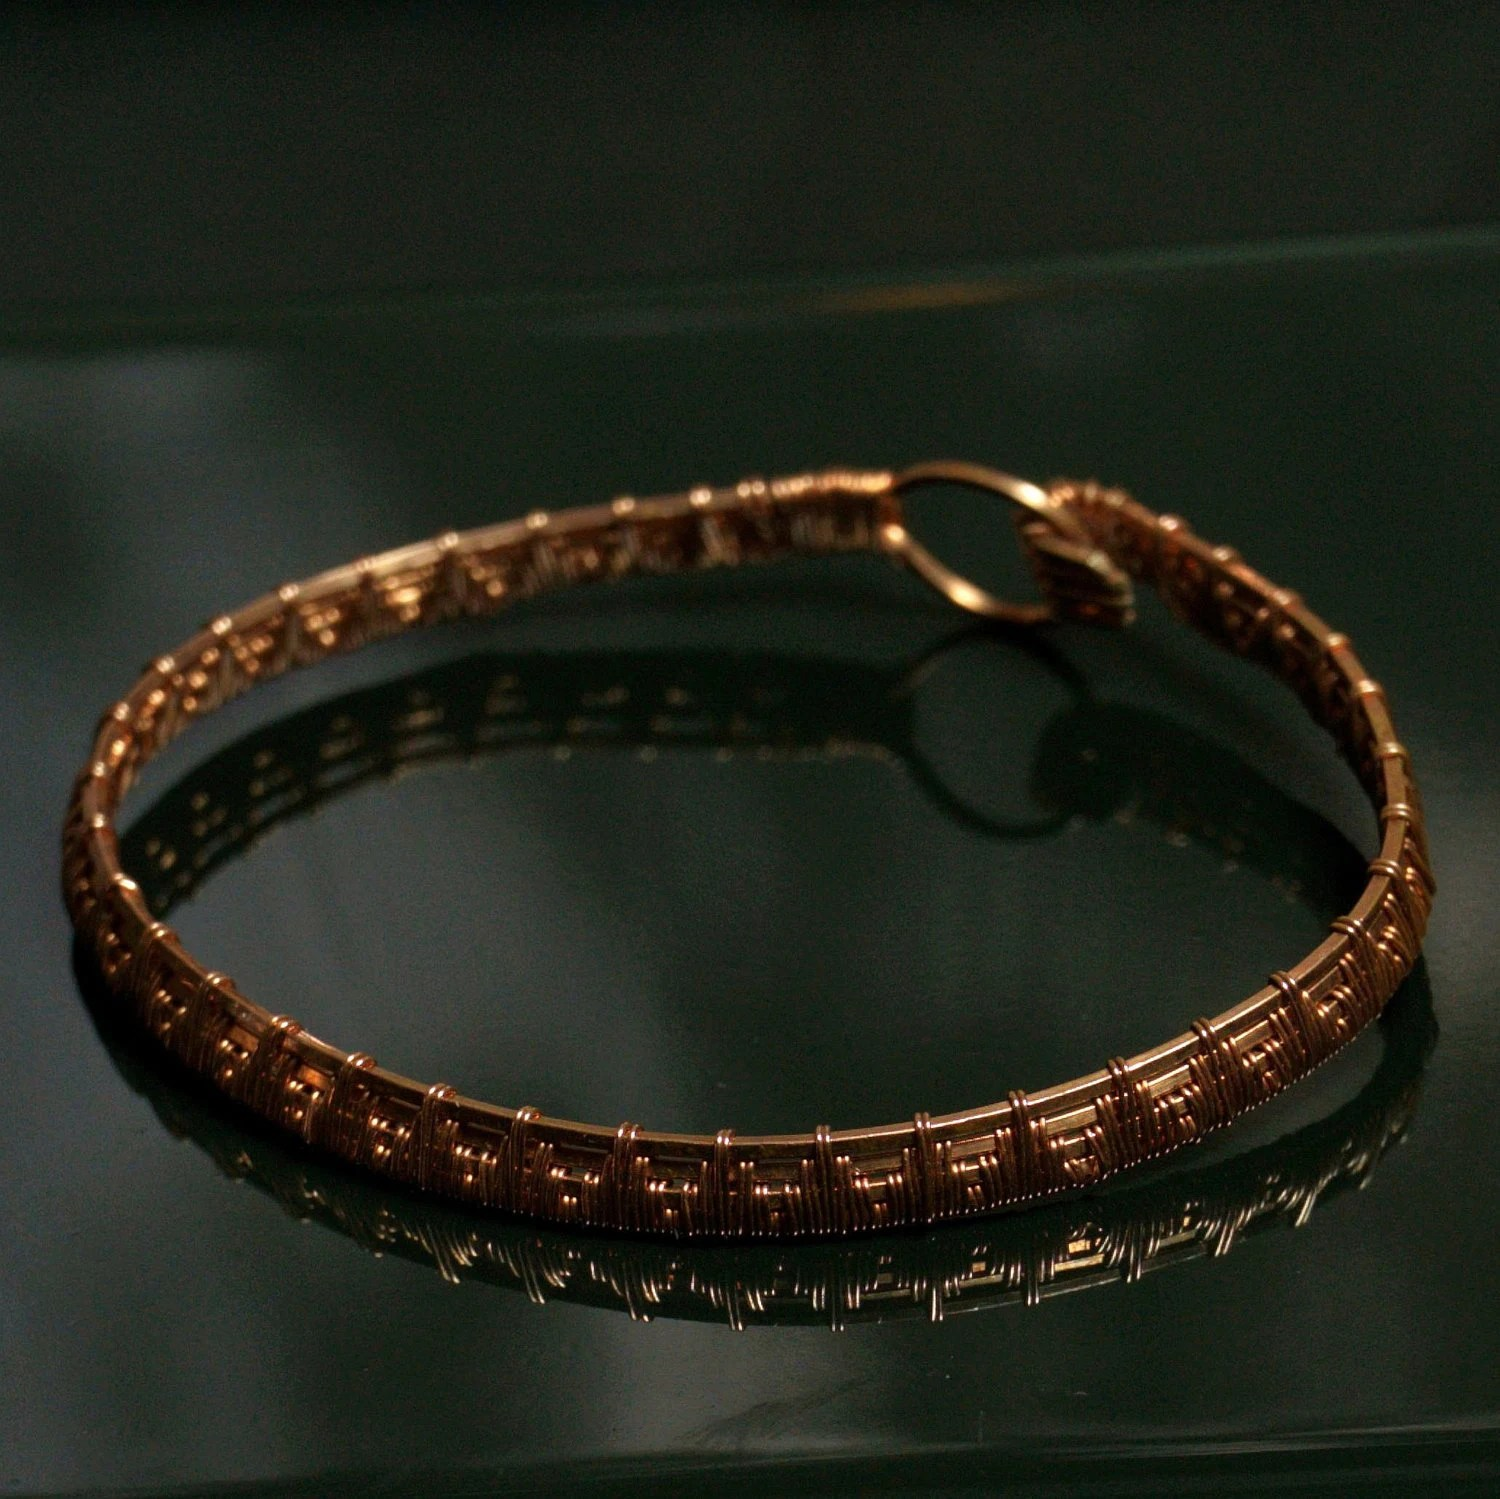 Handmade Copper Wire Wrapped Bracelet With Pyramid Design